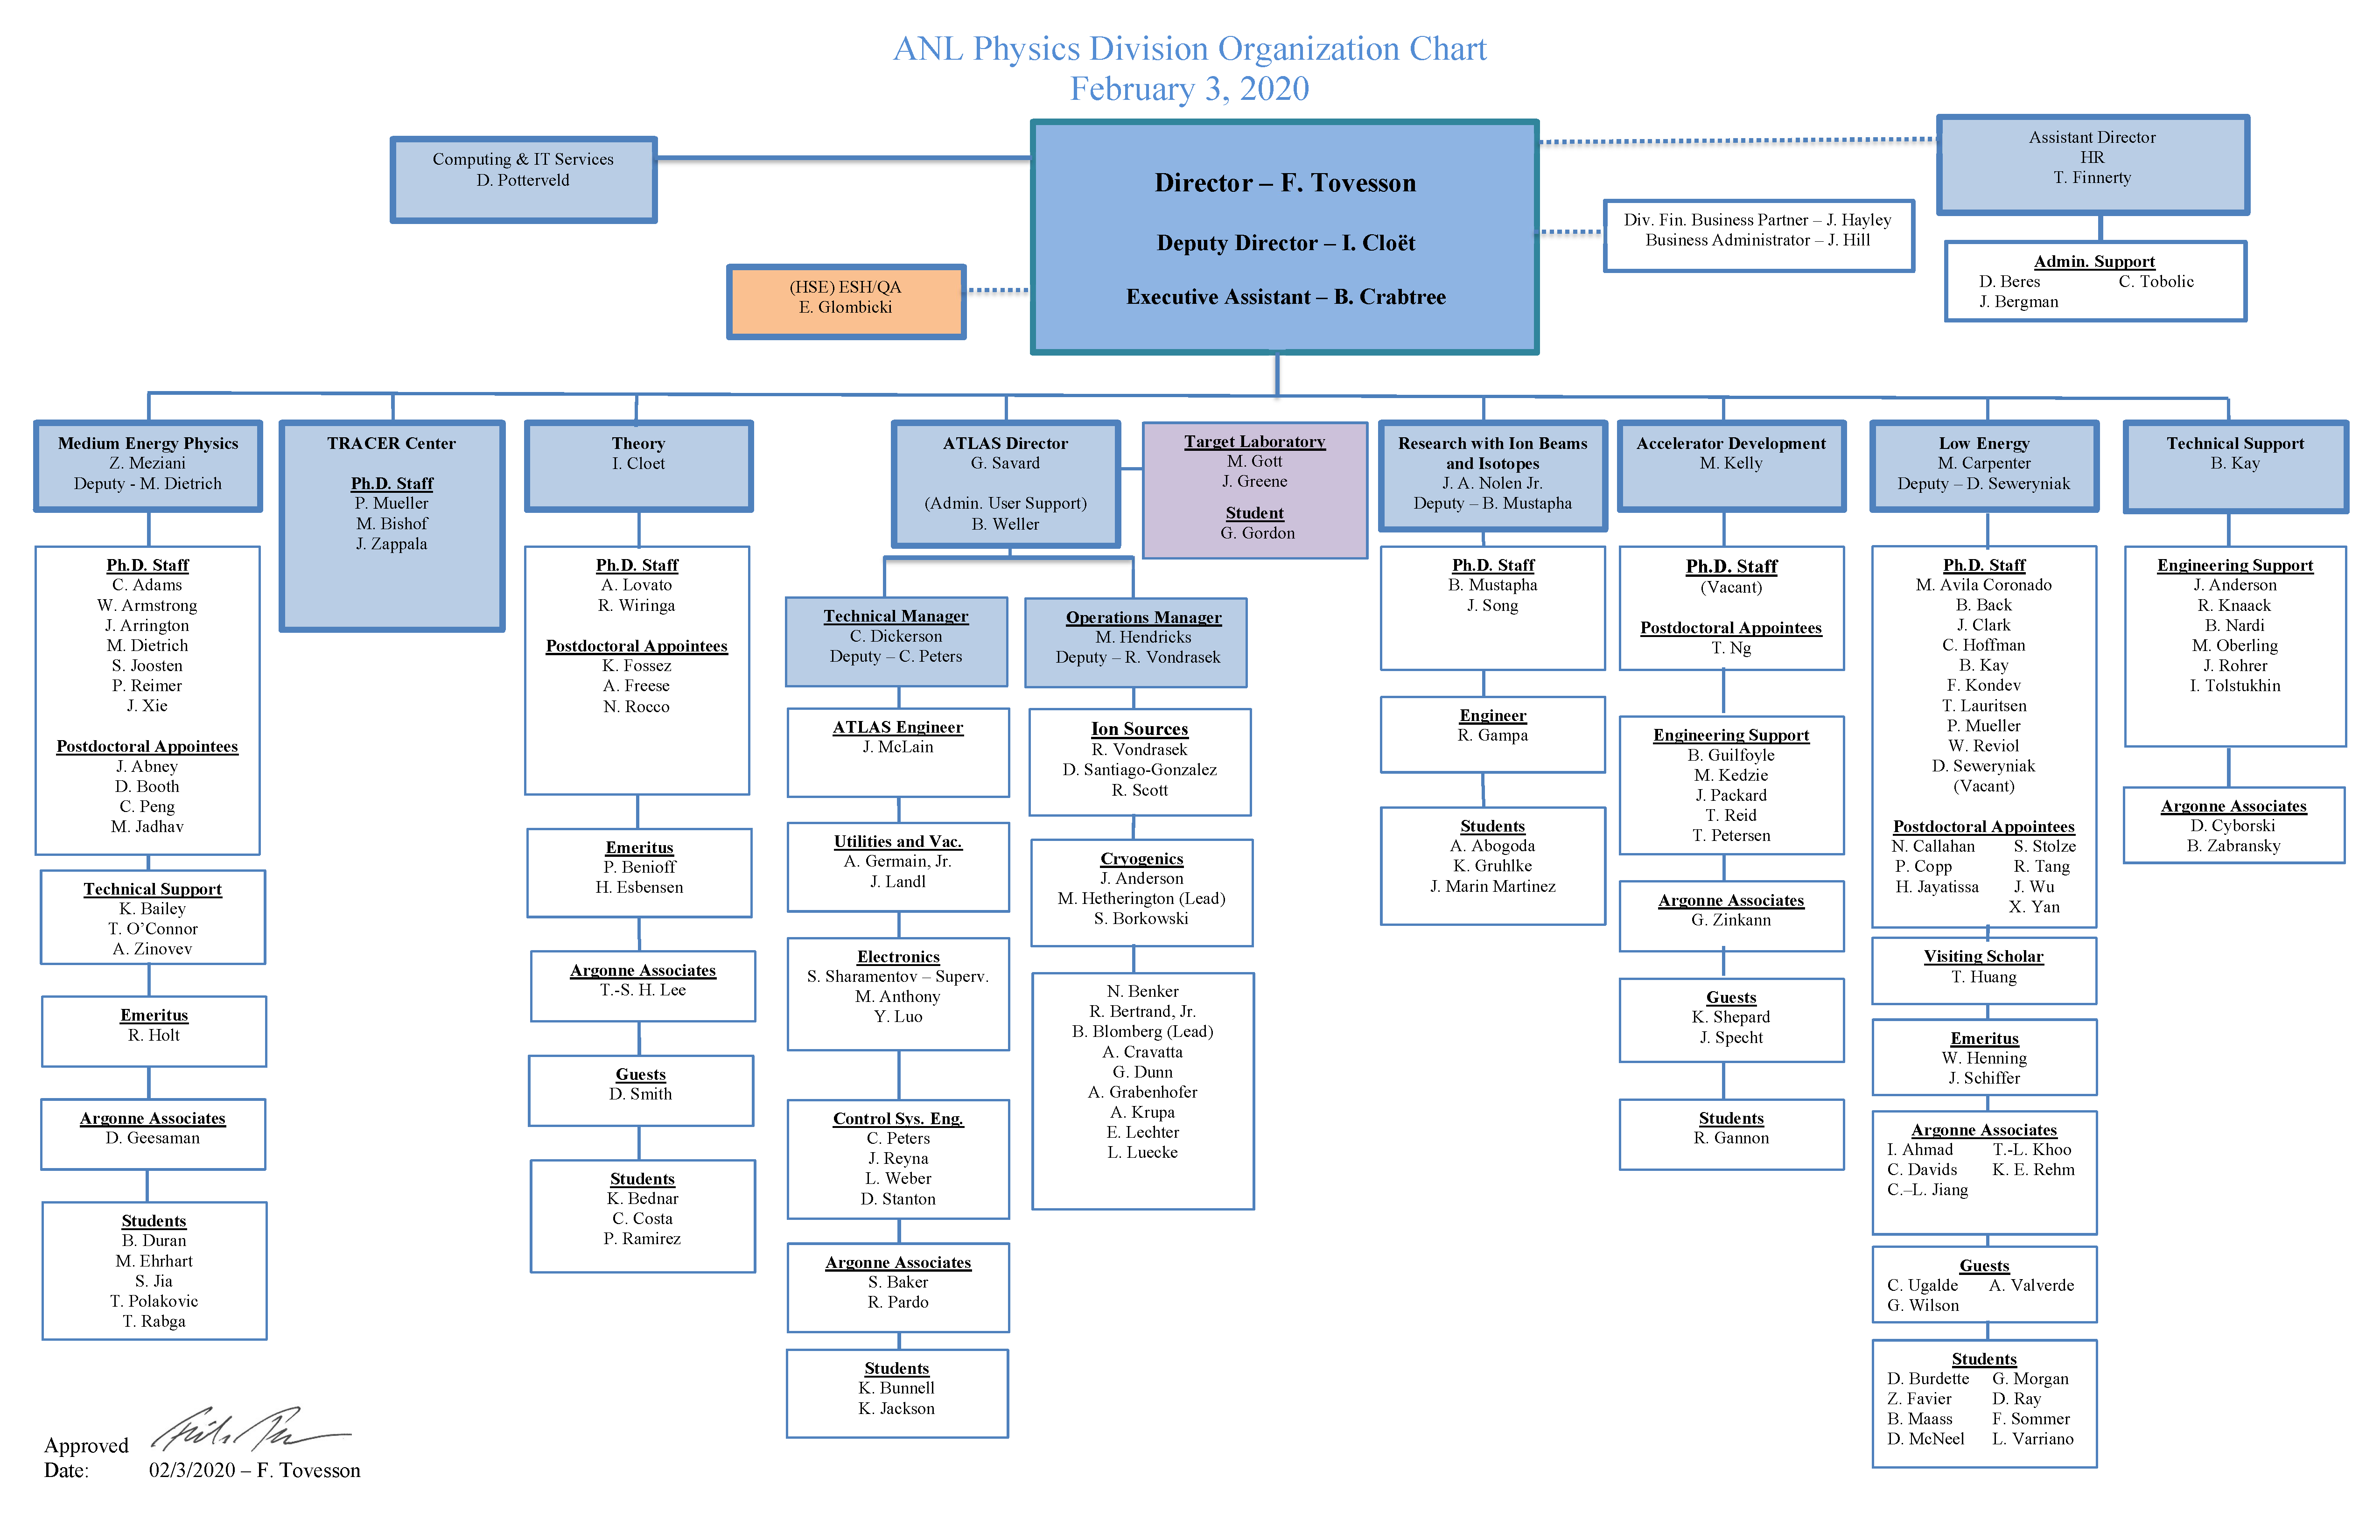 Argonne National Laboratory Physics Division Organization Chart